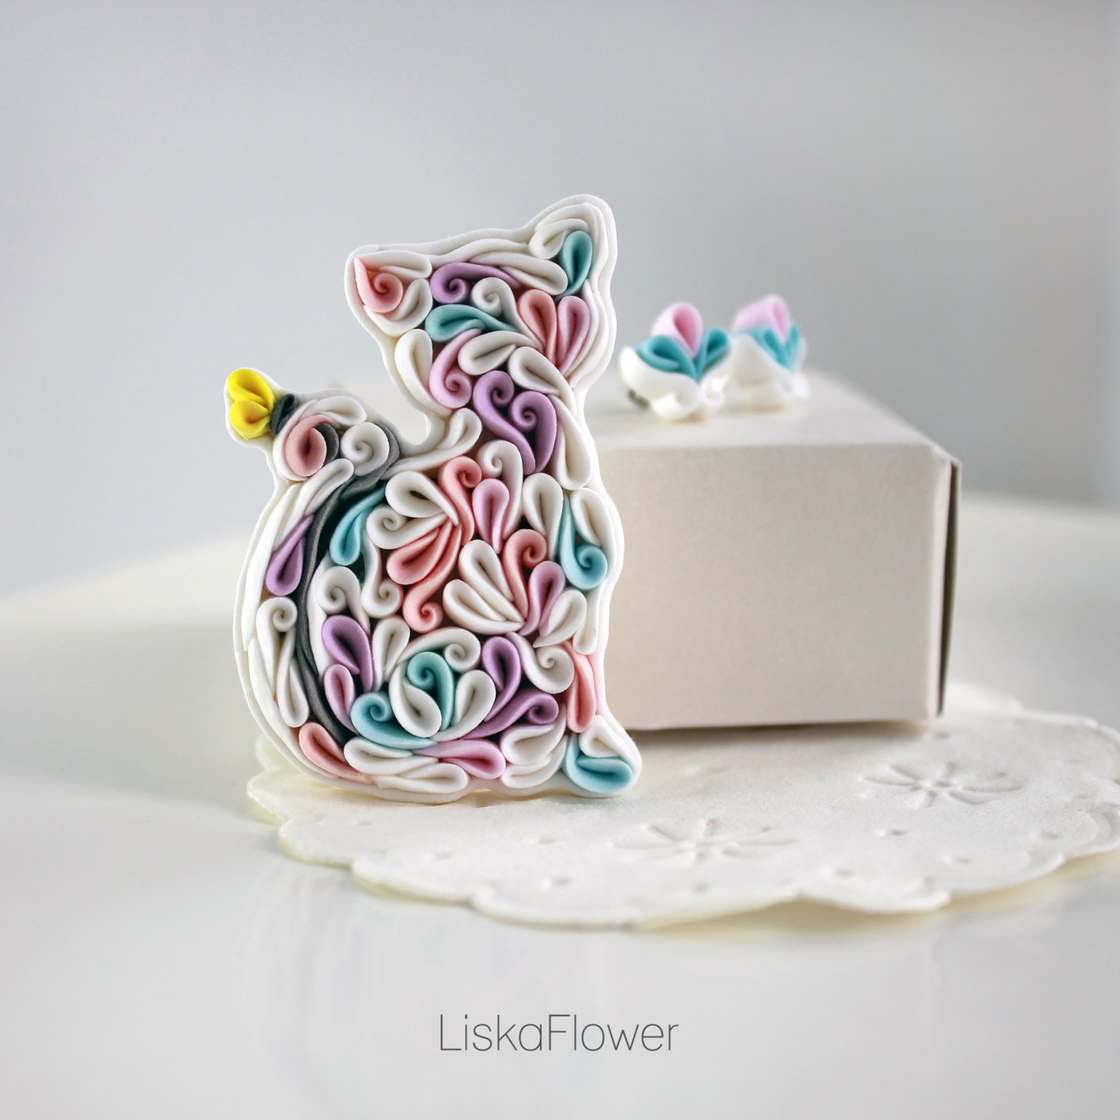 The pretty amazing and colorful creations of Liskaflower